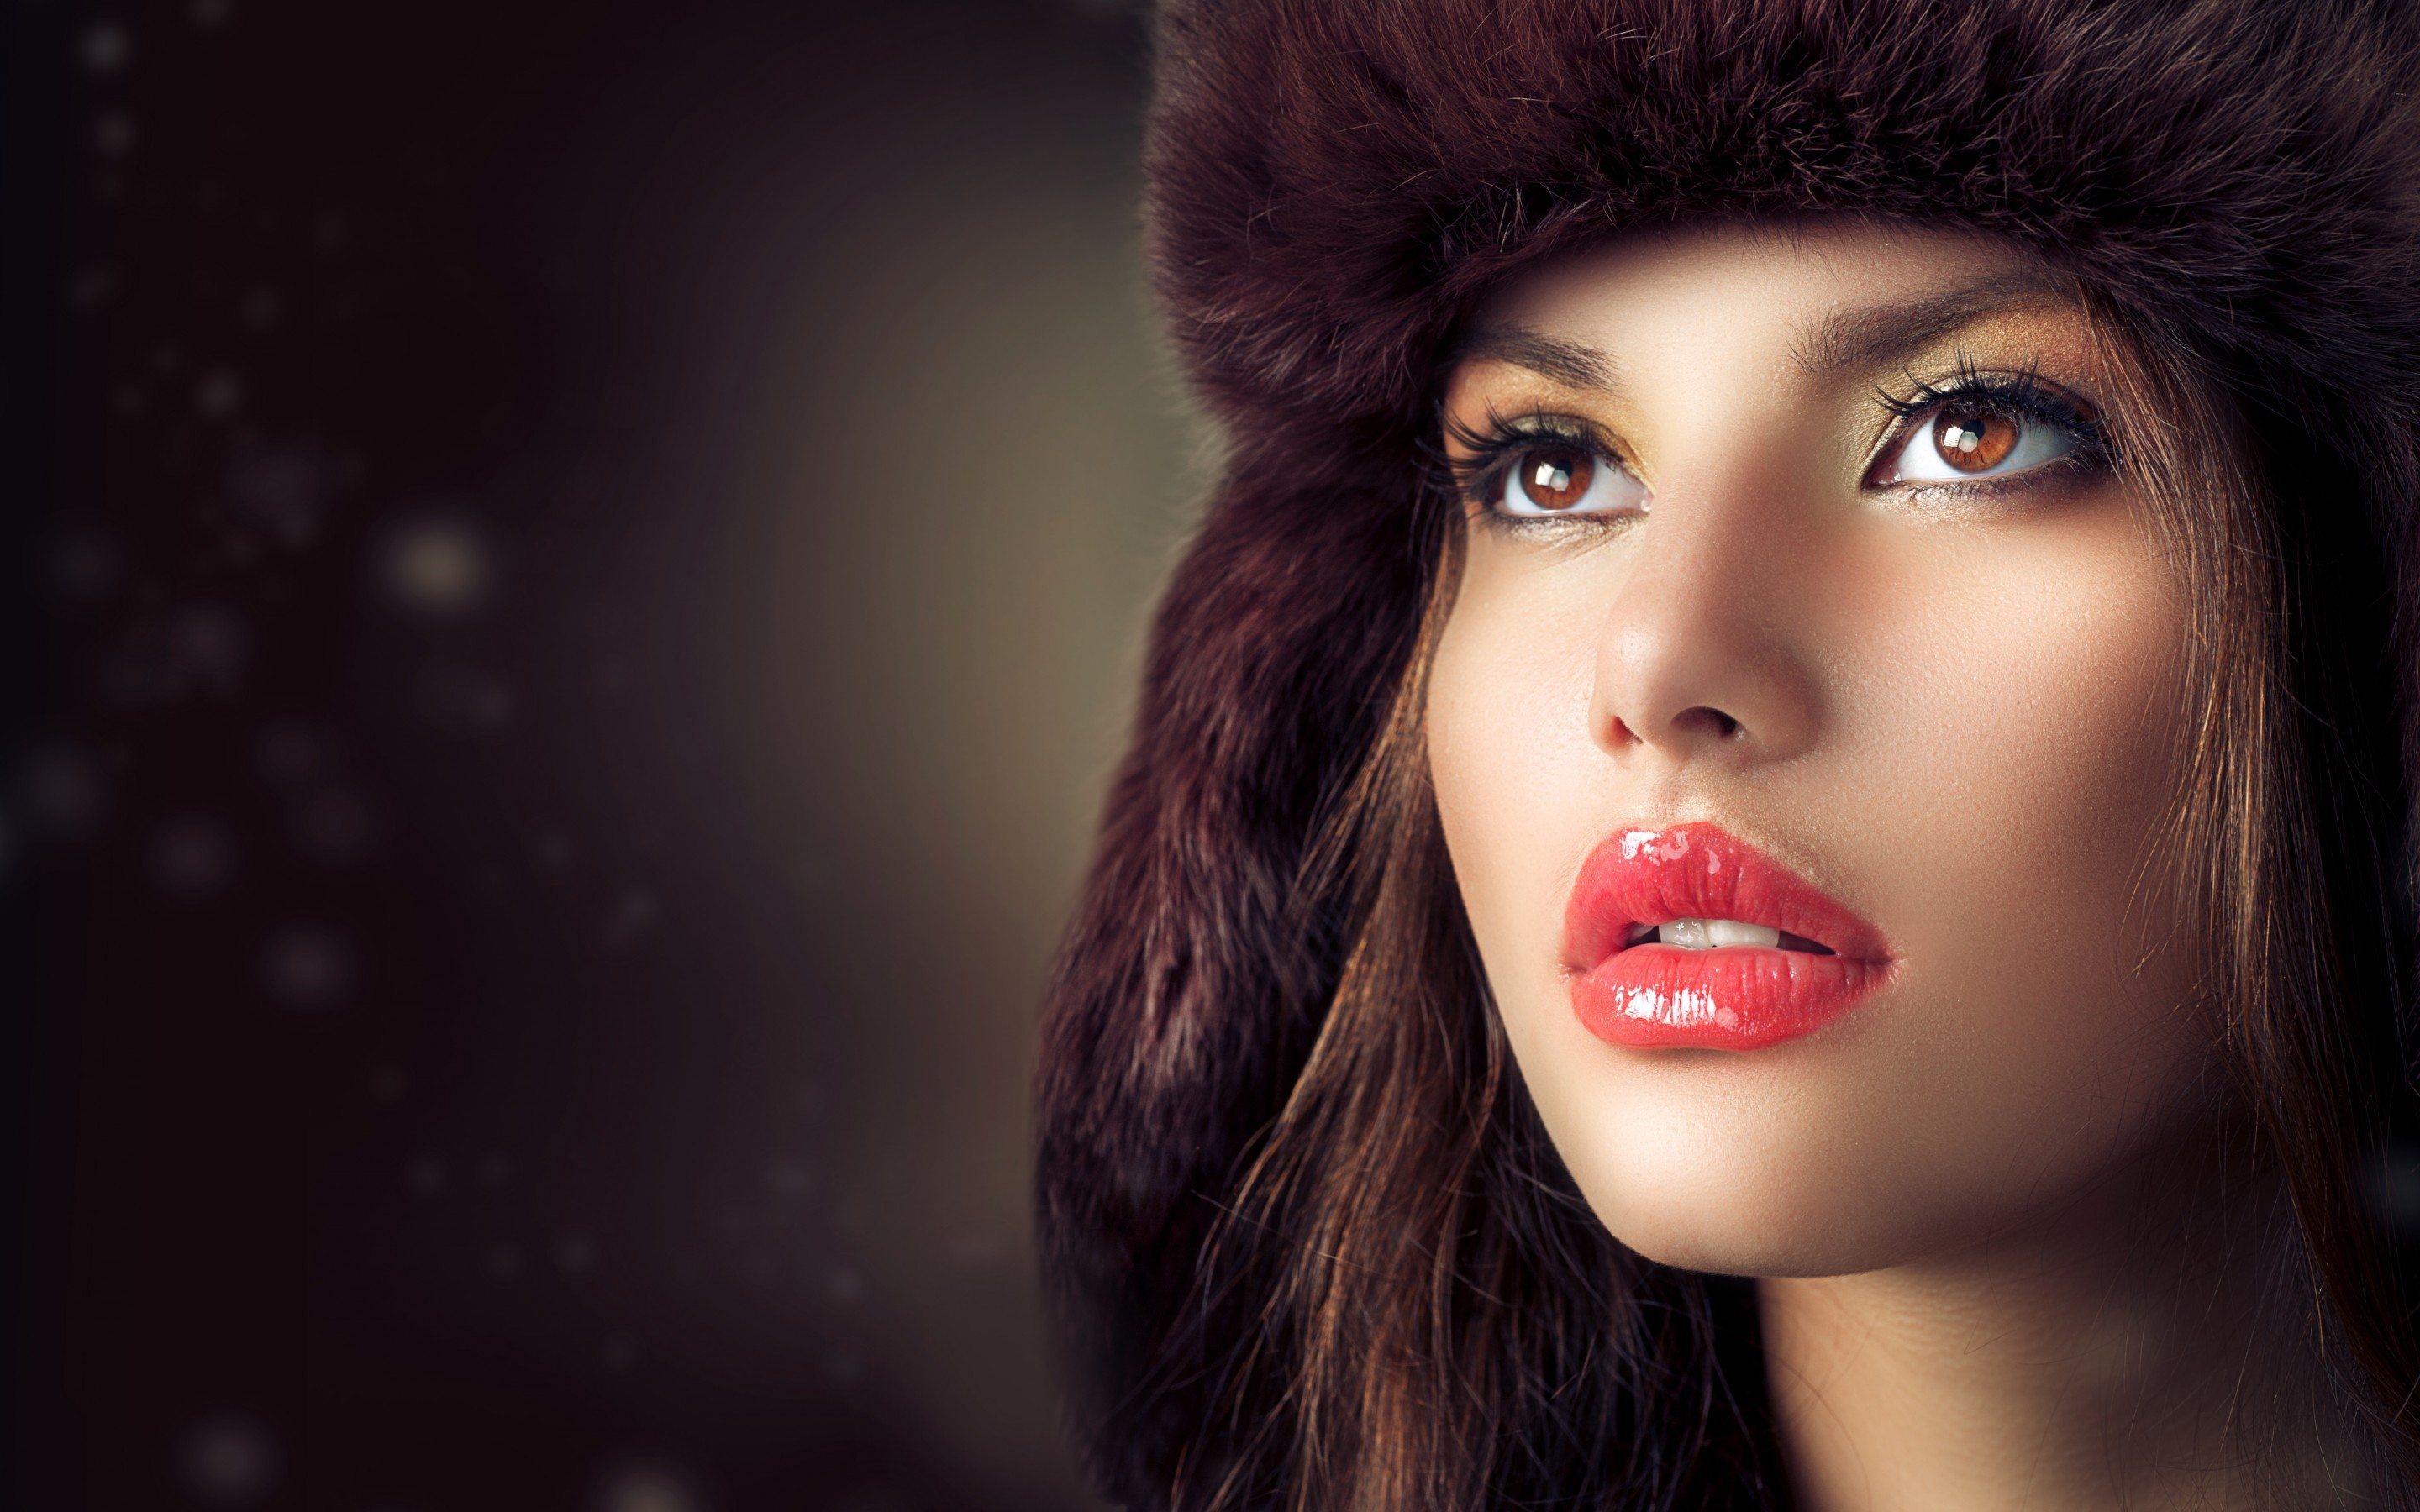 Free Download 65 Beauty Salon Wallpapers On Wallpaperplay